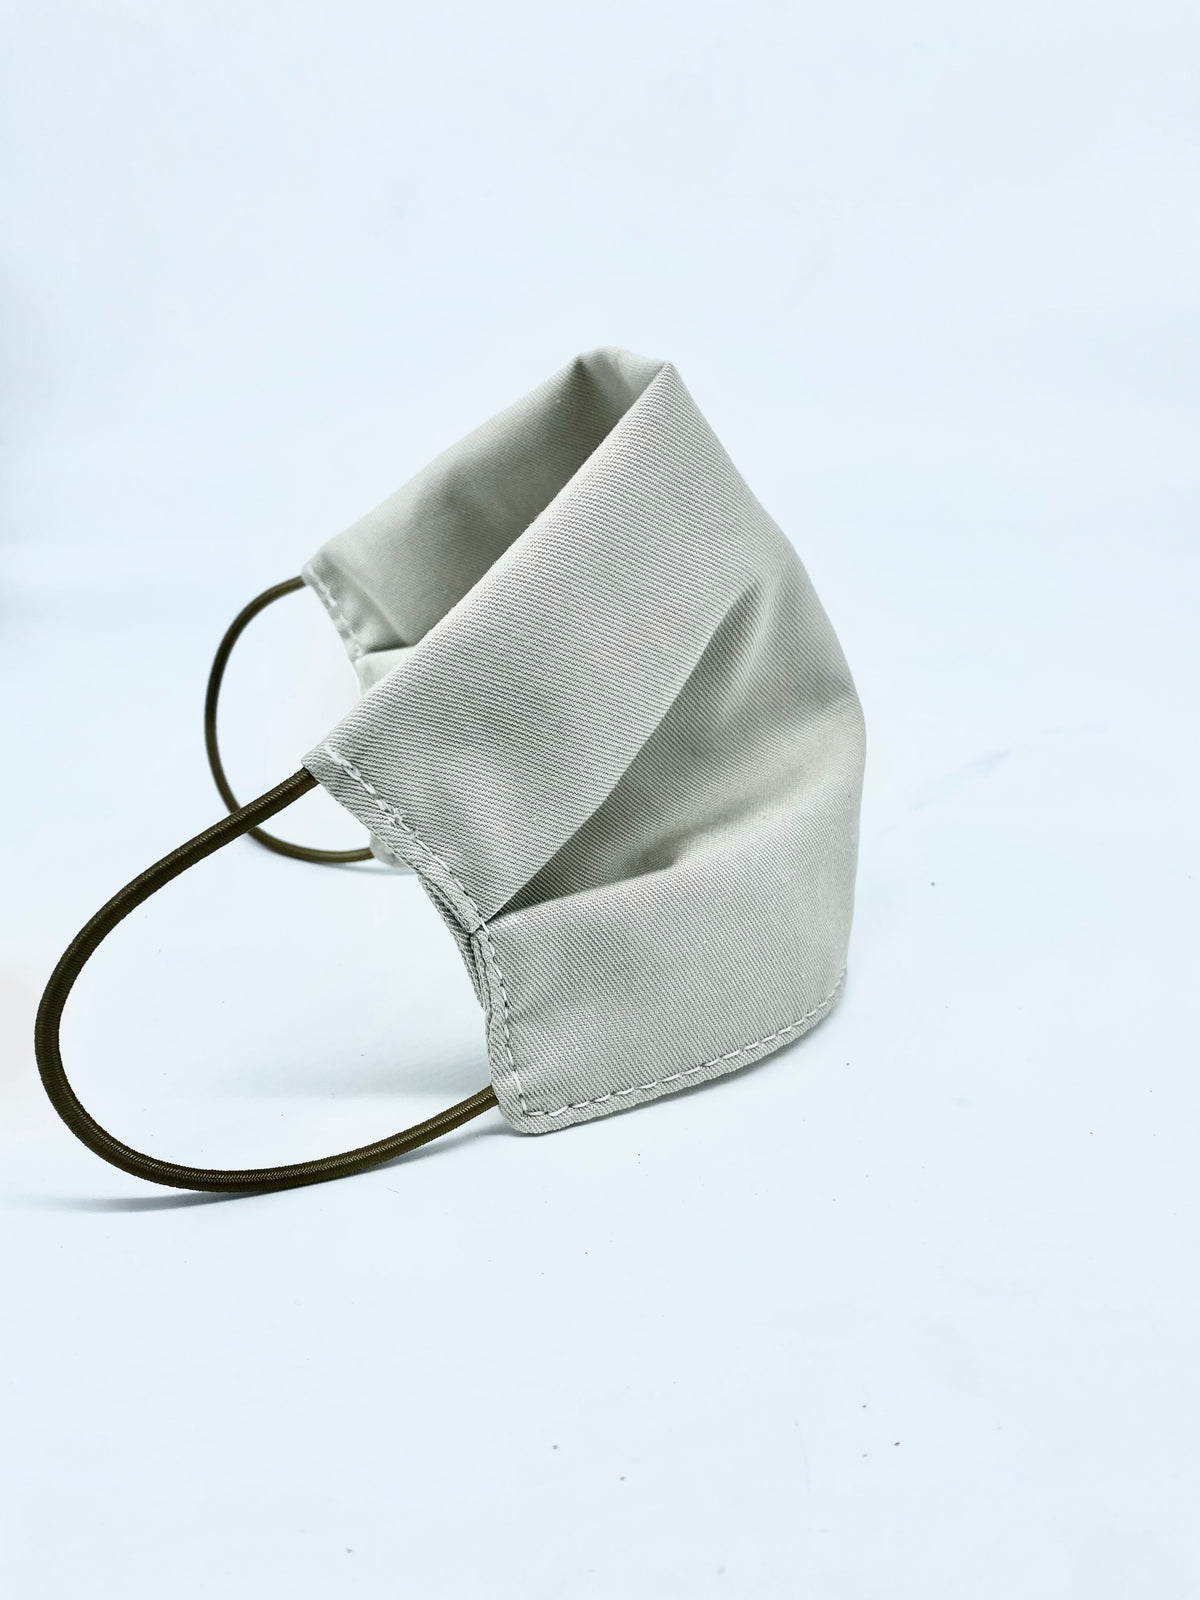 The Eco Cotton Twill Reusable Face Mask - Stone-Rais Case-image 5